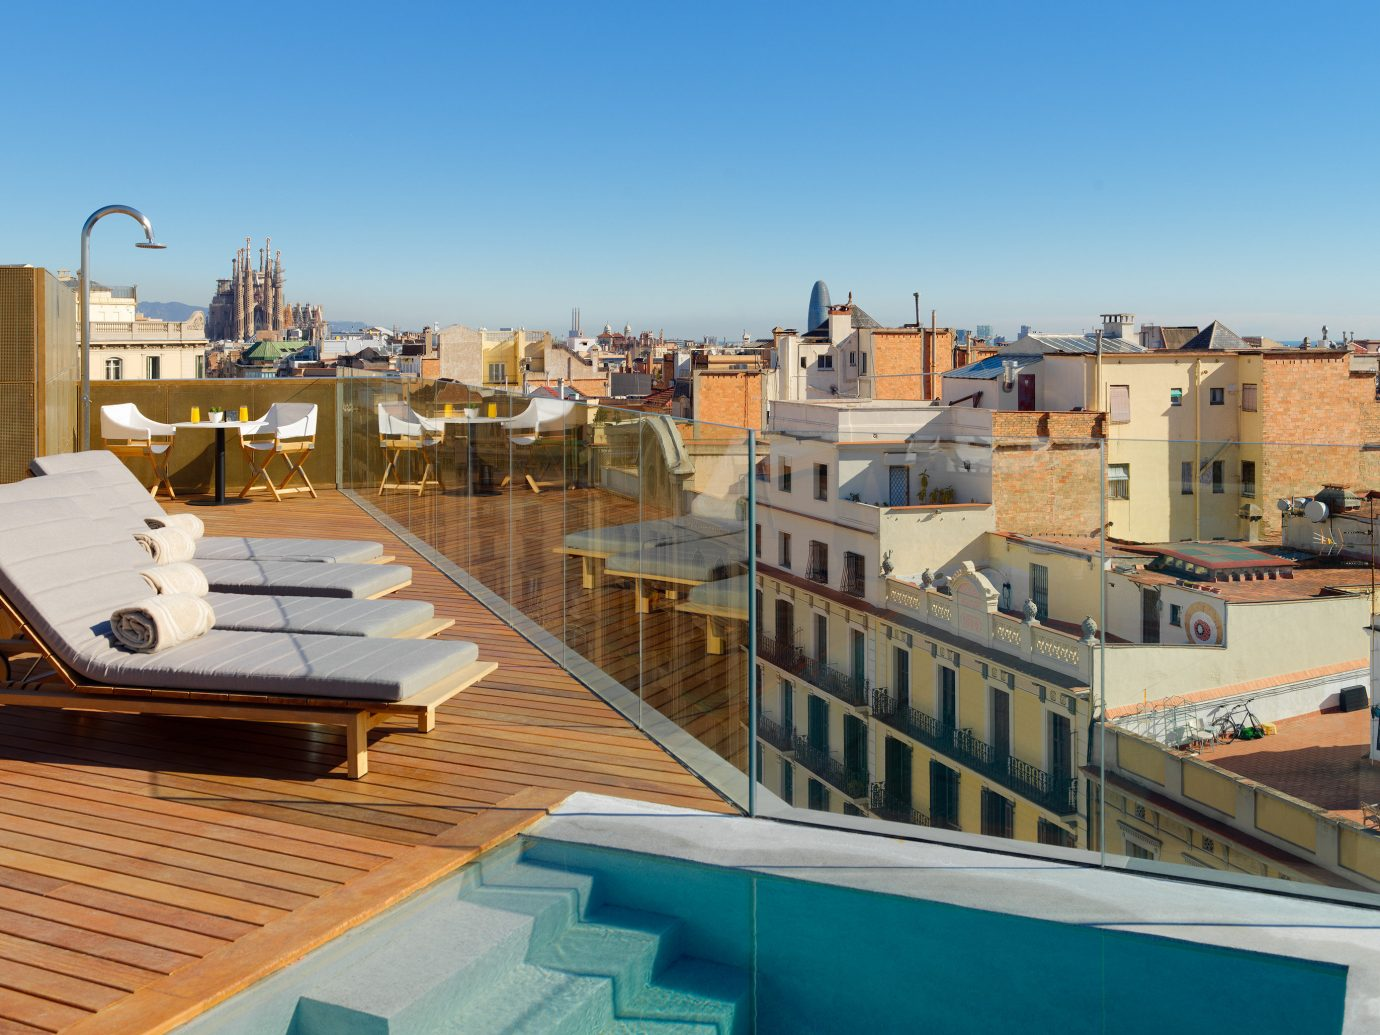 Barcelona Hotels Spain sky outdoor roof property residential area Town apartment City real estate home neighbourhood condominium house outdoor structure building Balcony hotel vacation water